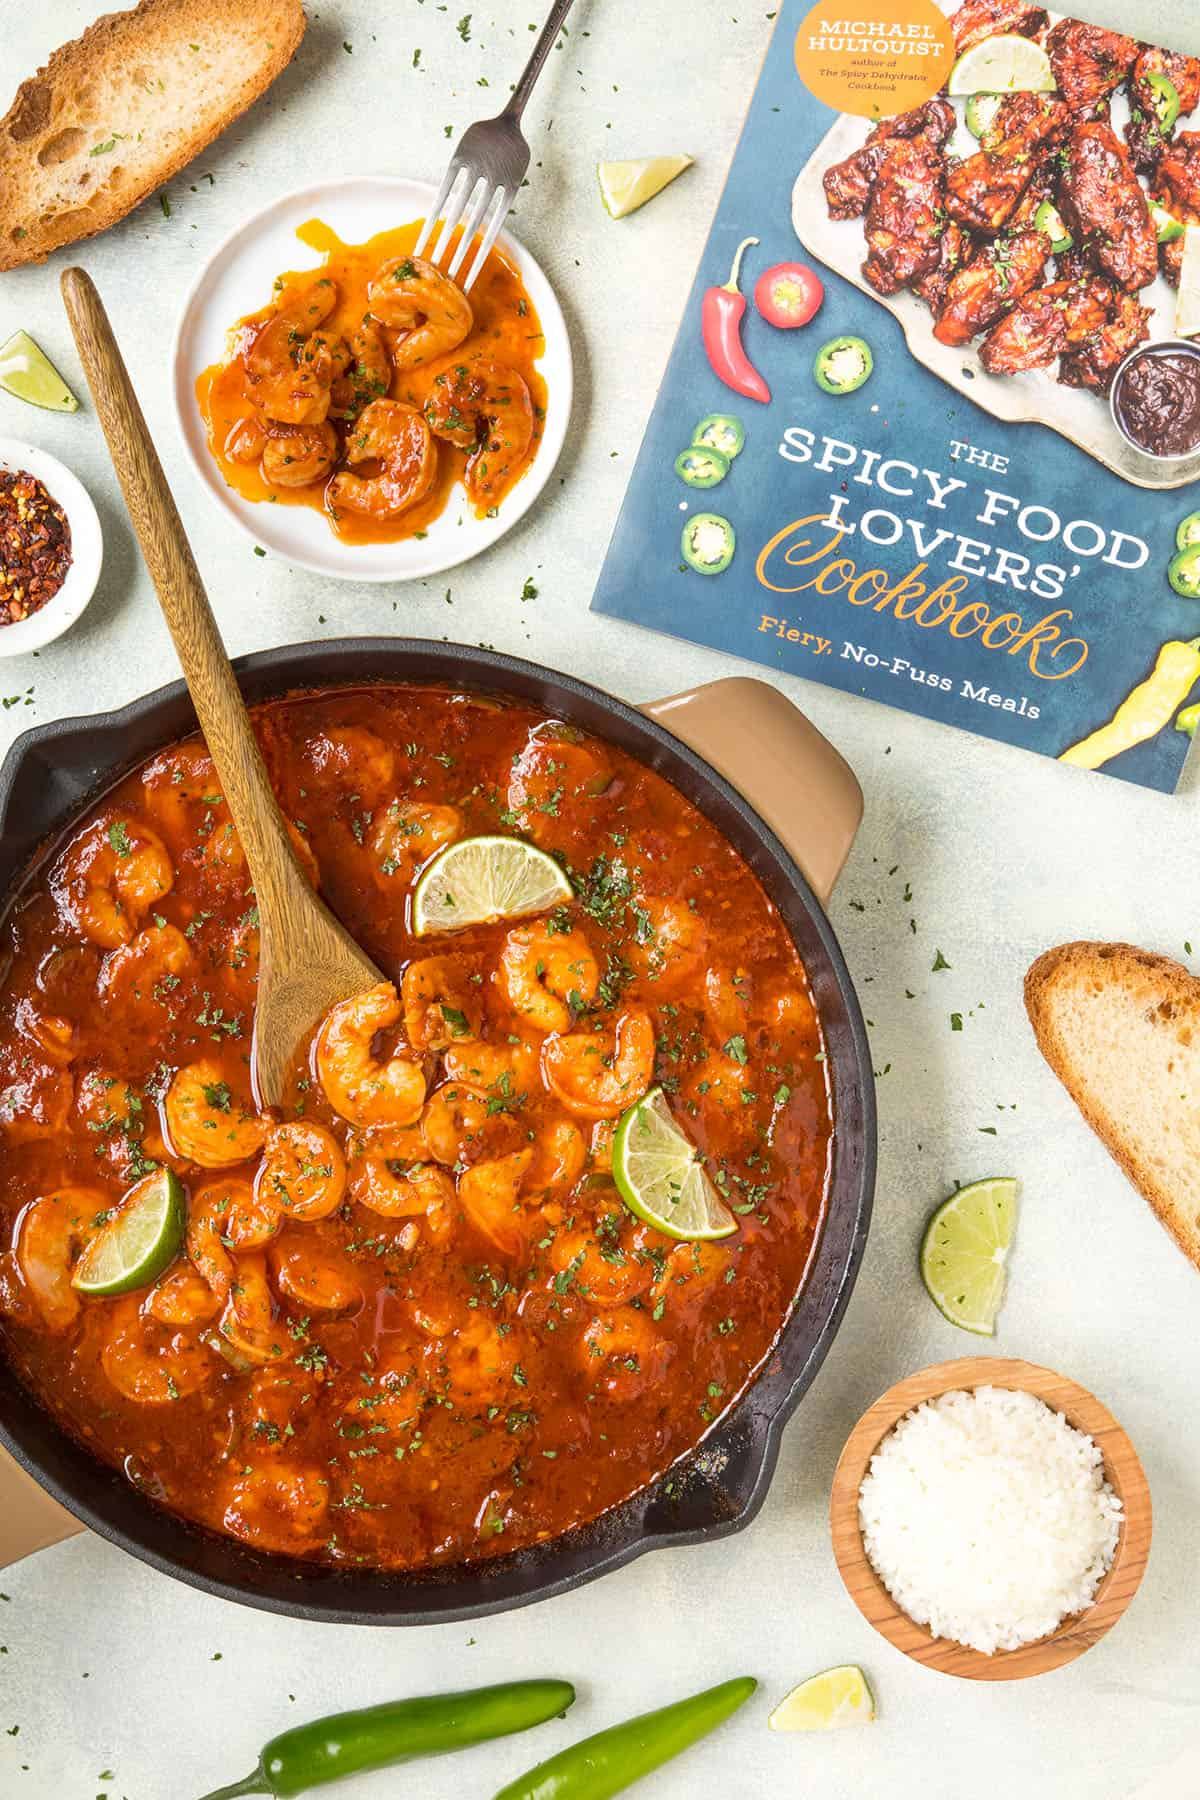 Shrimp in Fiery Chipotle-Tequila Sauce, next to my cookbook that includes the recipe